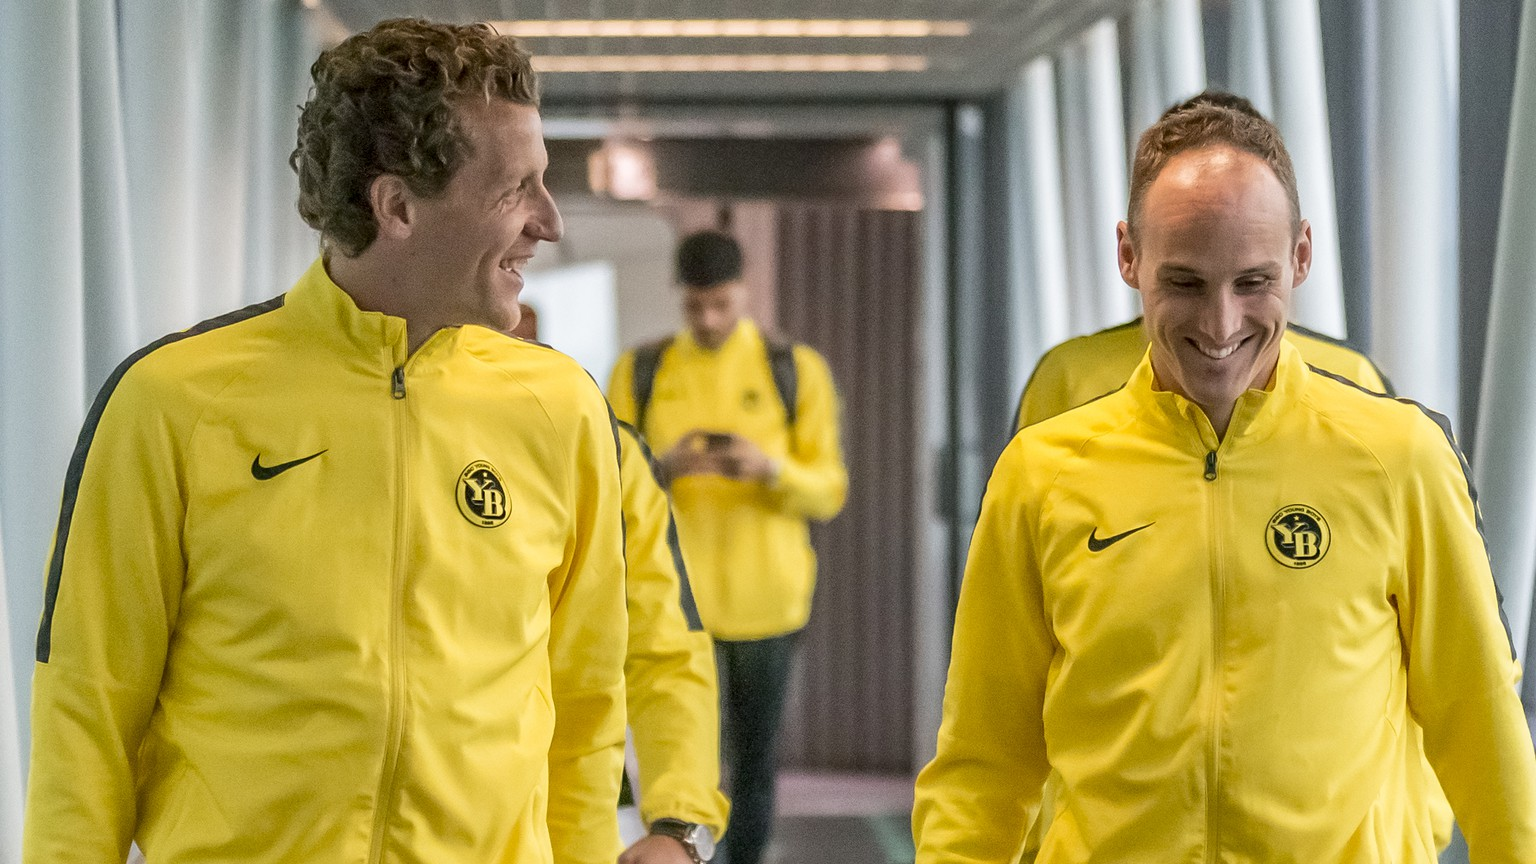 Young Boys players Marco Woelfli and Steve von Bergen, L-R, at the airport after the arrival in Turin for the UEFA Champions League group H matchday 2 soccer match between Juventus Turin and BSC Young Boys on Monday, October 1st 2018, in Turin. (KEYSTONE/Thomas Hodel)